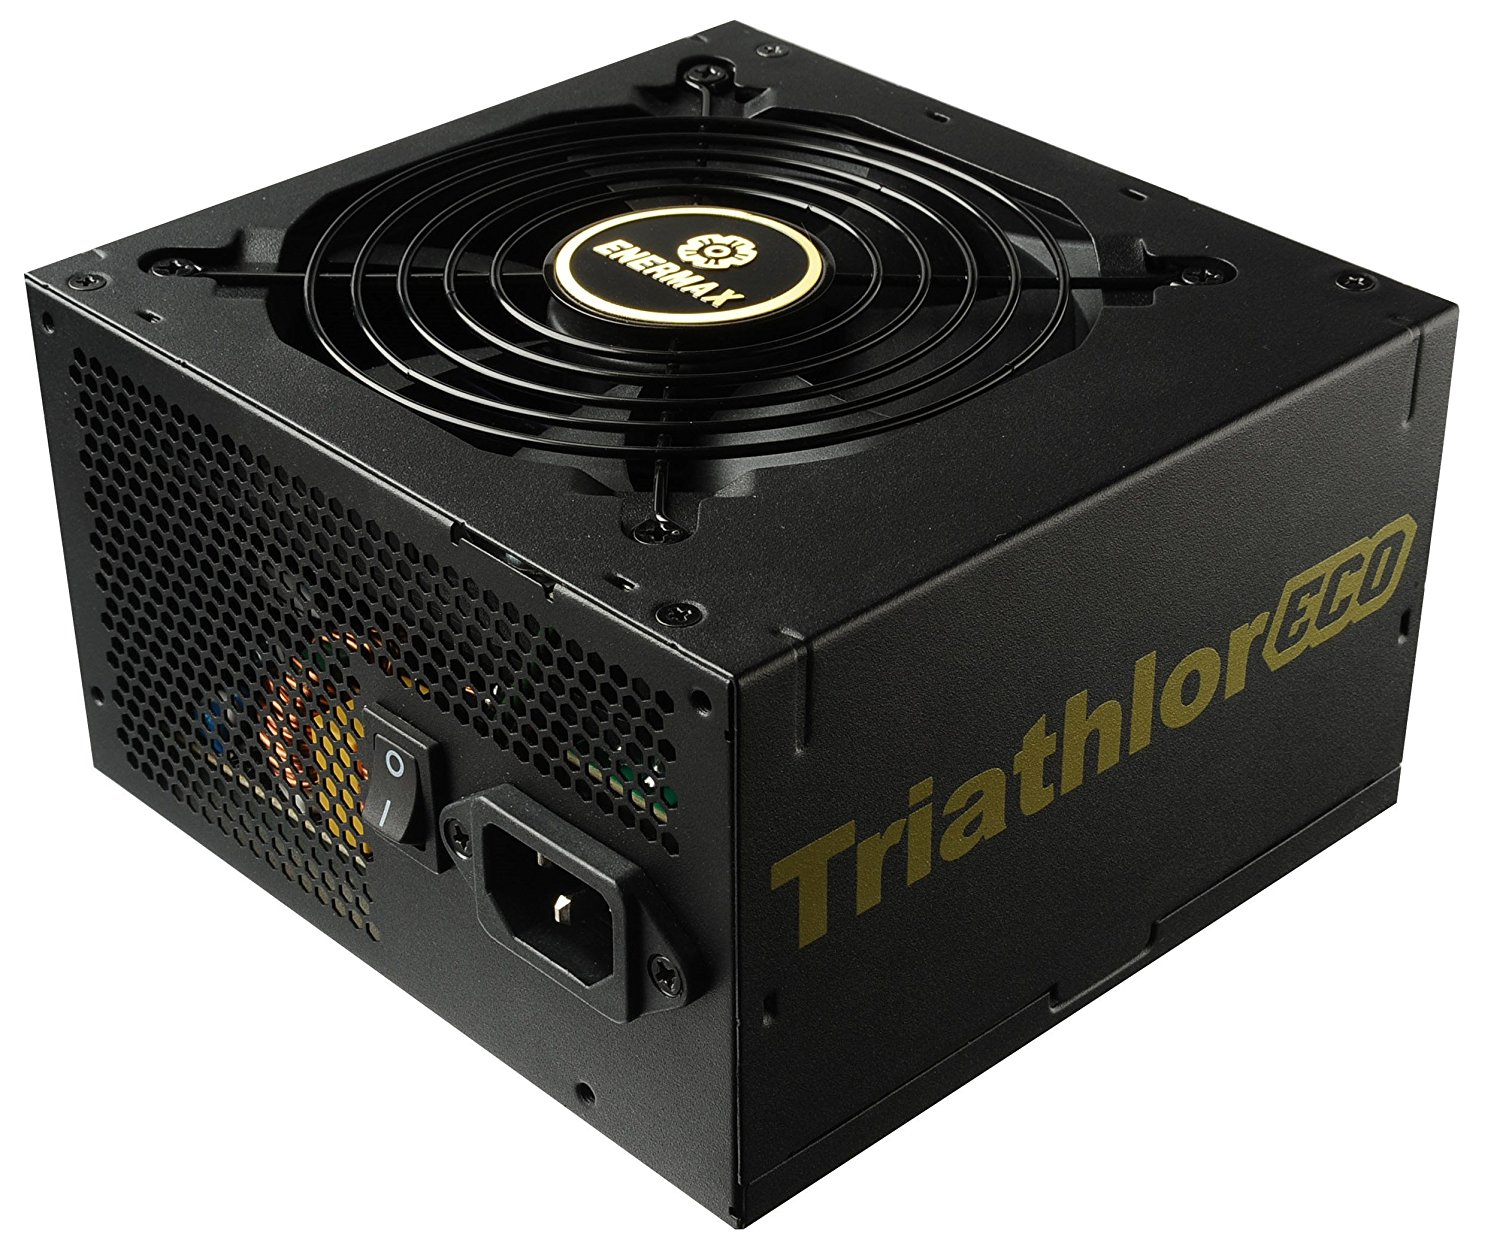 Sursa PC Enermax Triathlor ECO 1000W